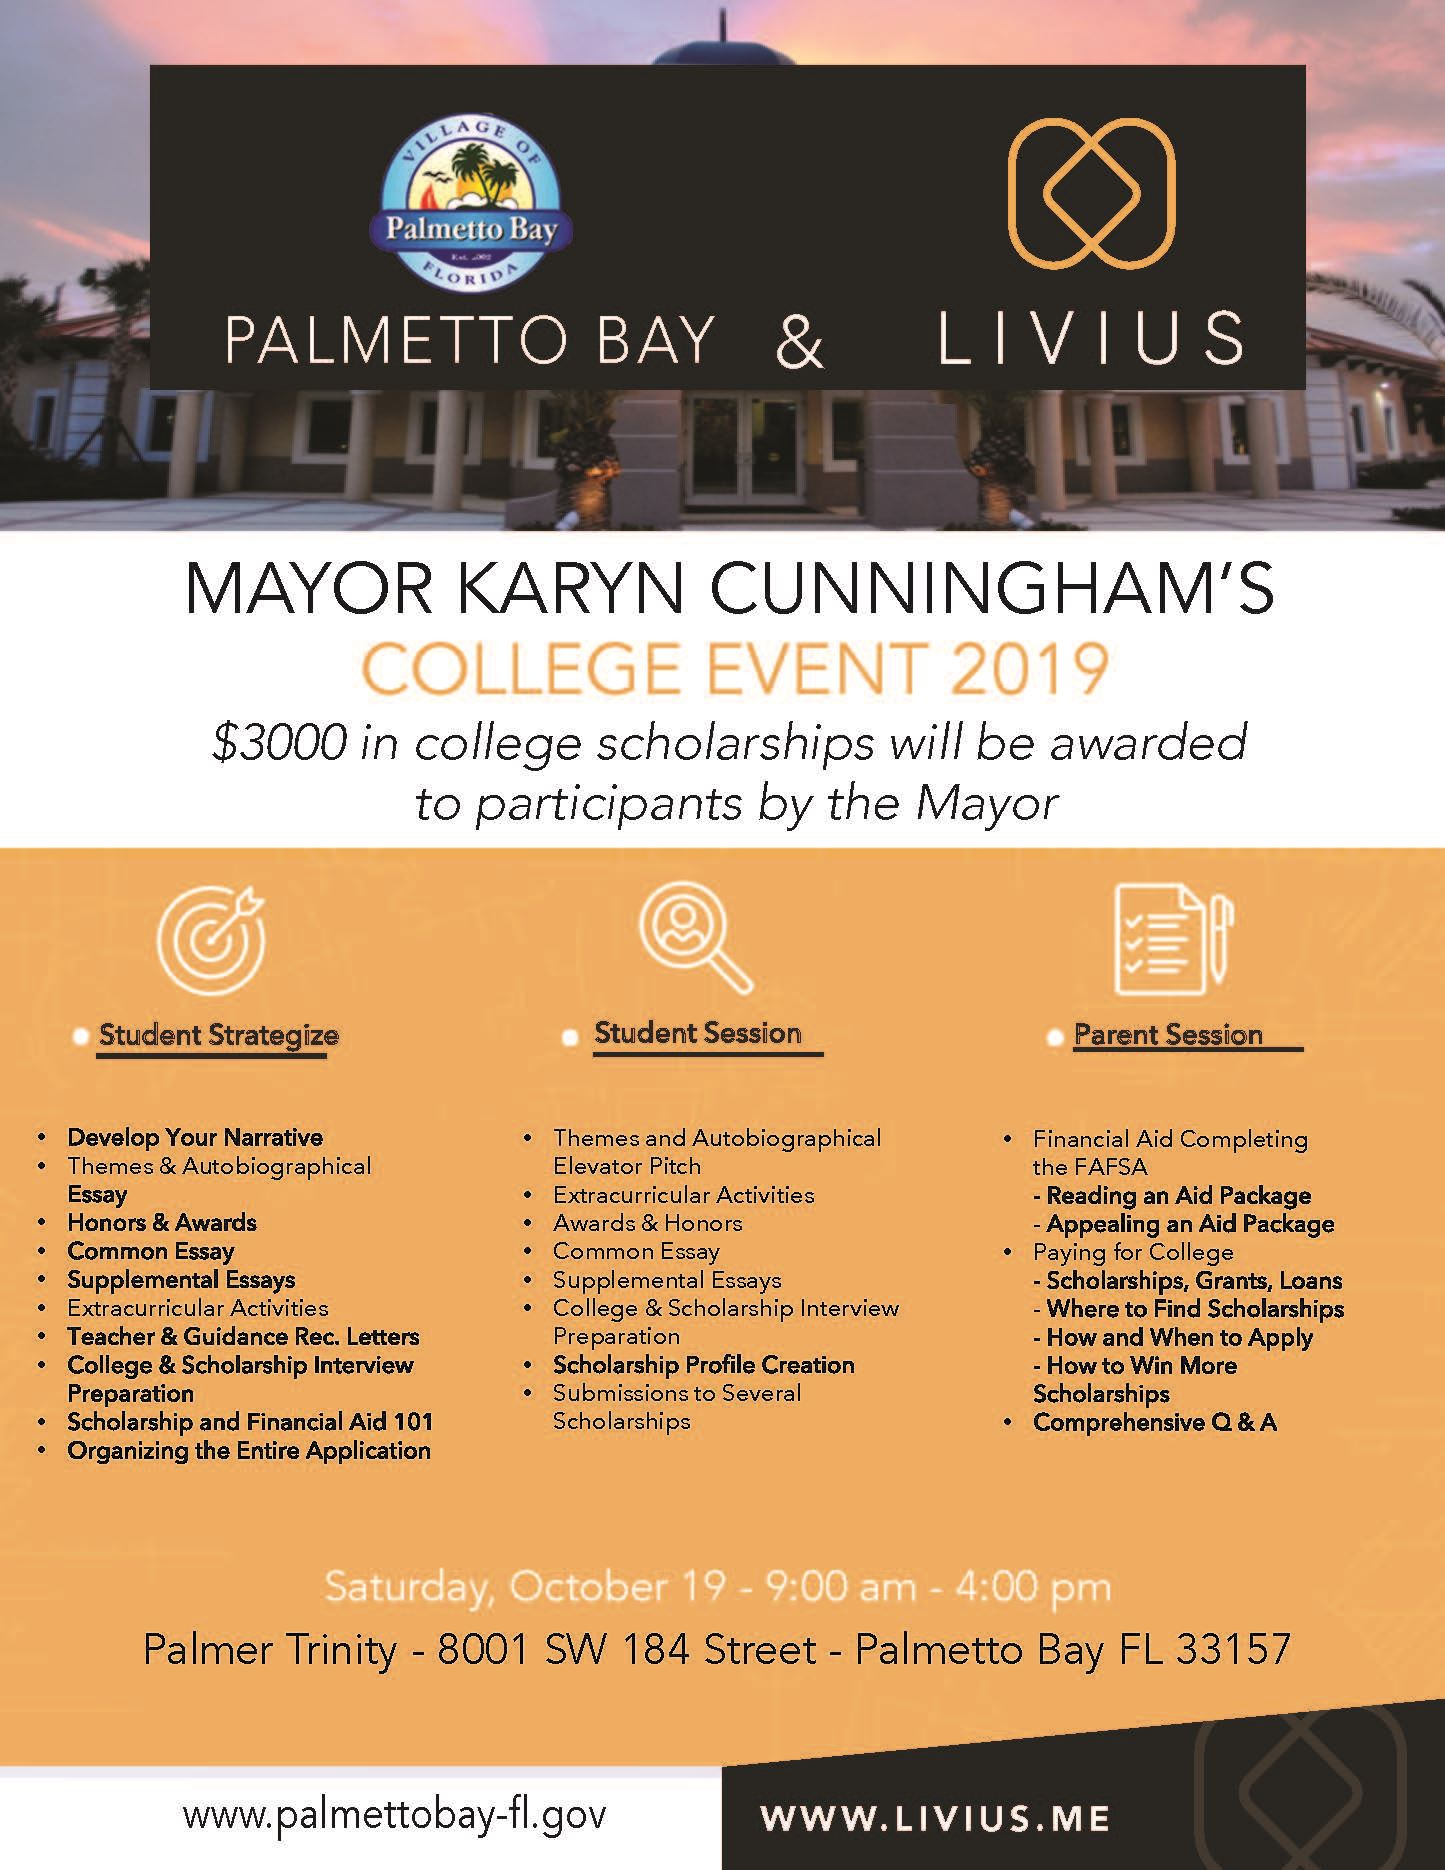 Hackathon Palmetto Bay, Mayor Cunningham's College Event 2019 Saturday, October 19, 2019 from 9 A